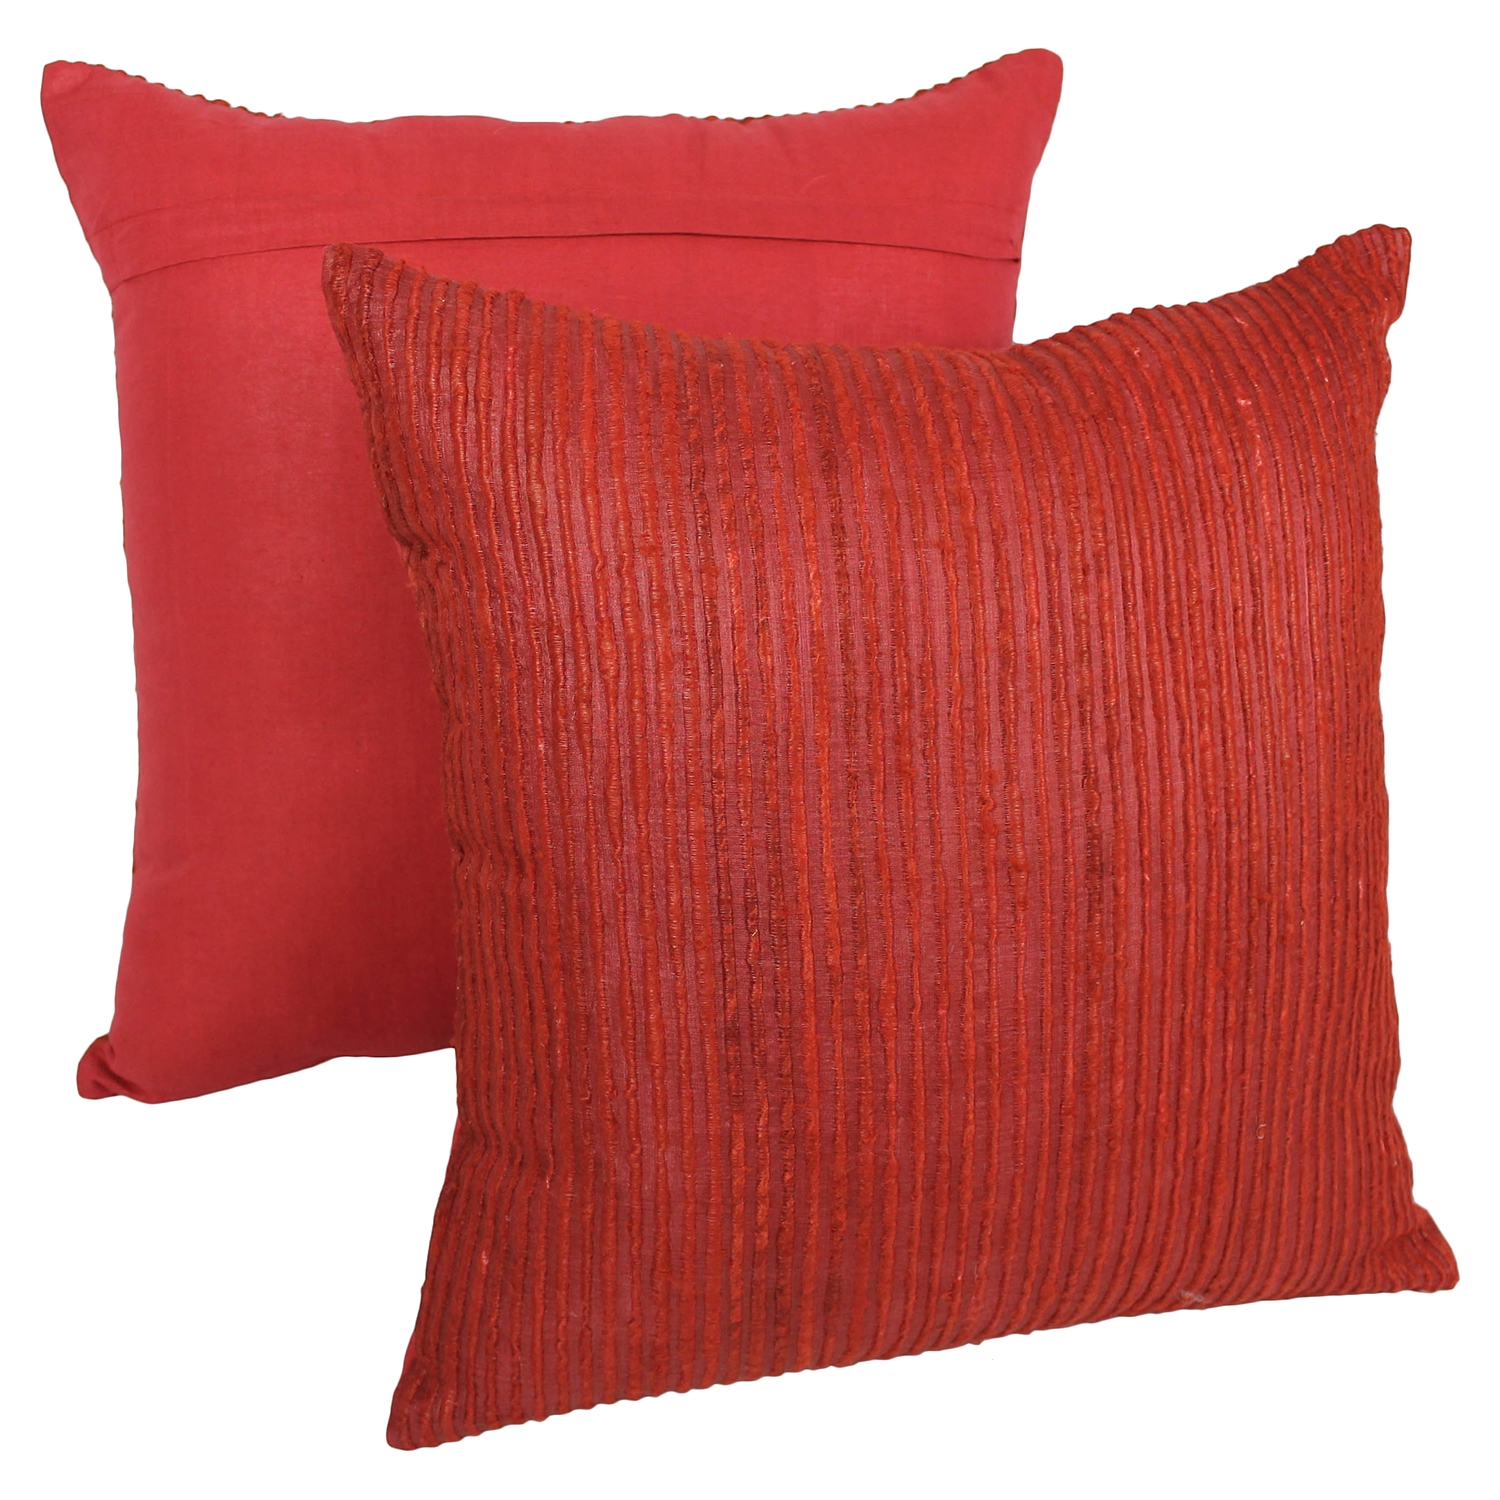 "Yarn Woven 20"" Throw Pillows - Red (Set of 2) - BLZ-IE-20-YRN-S2-RD"